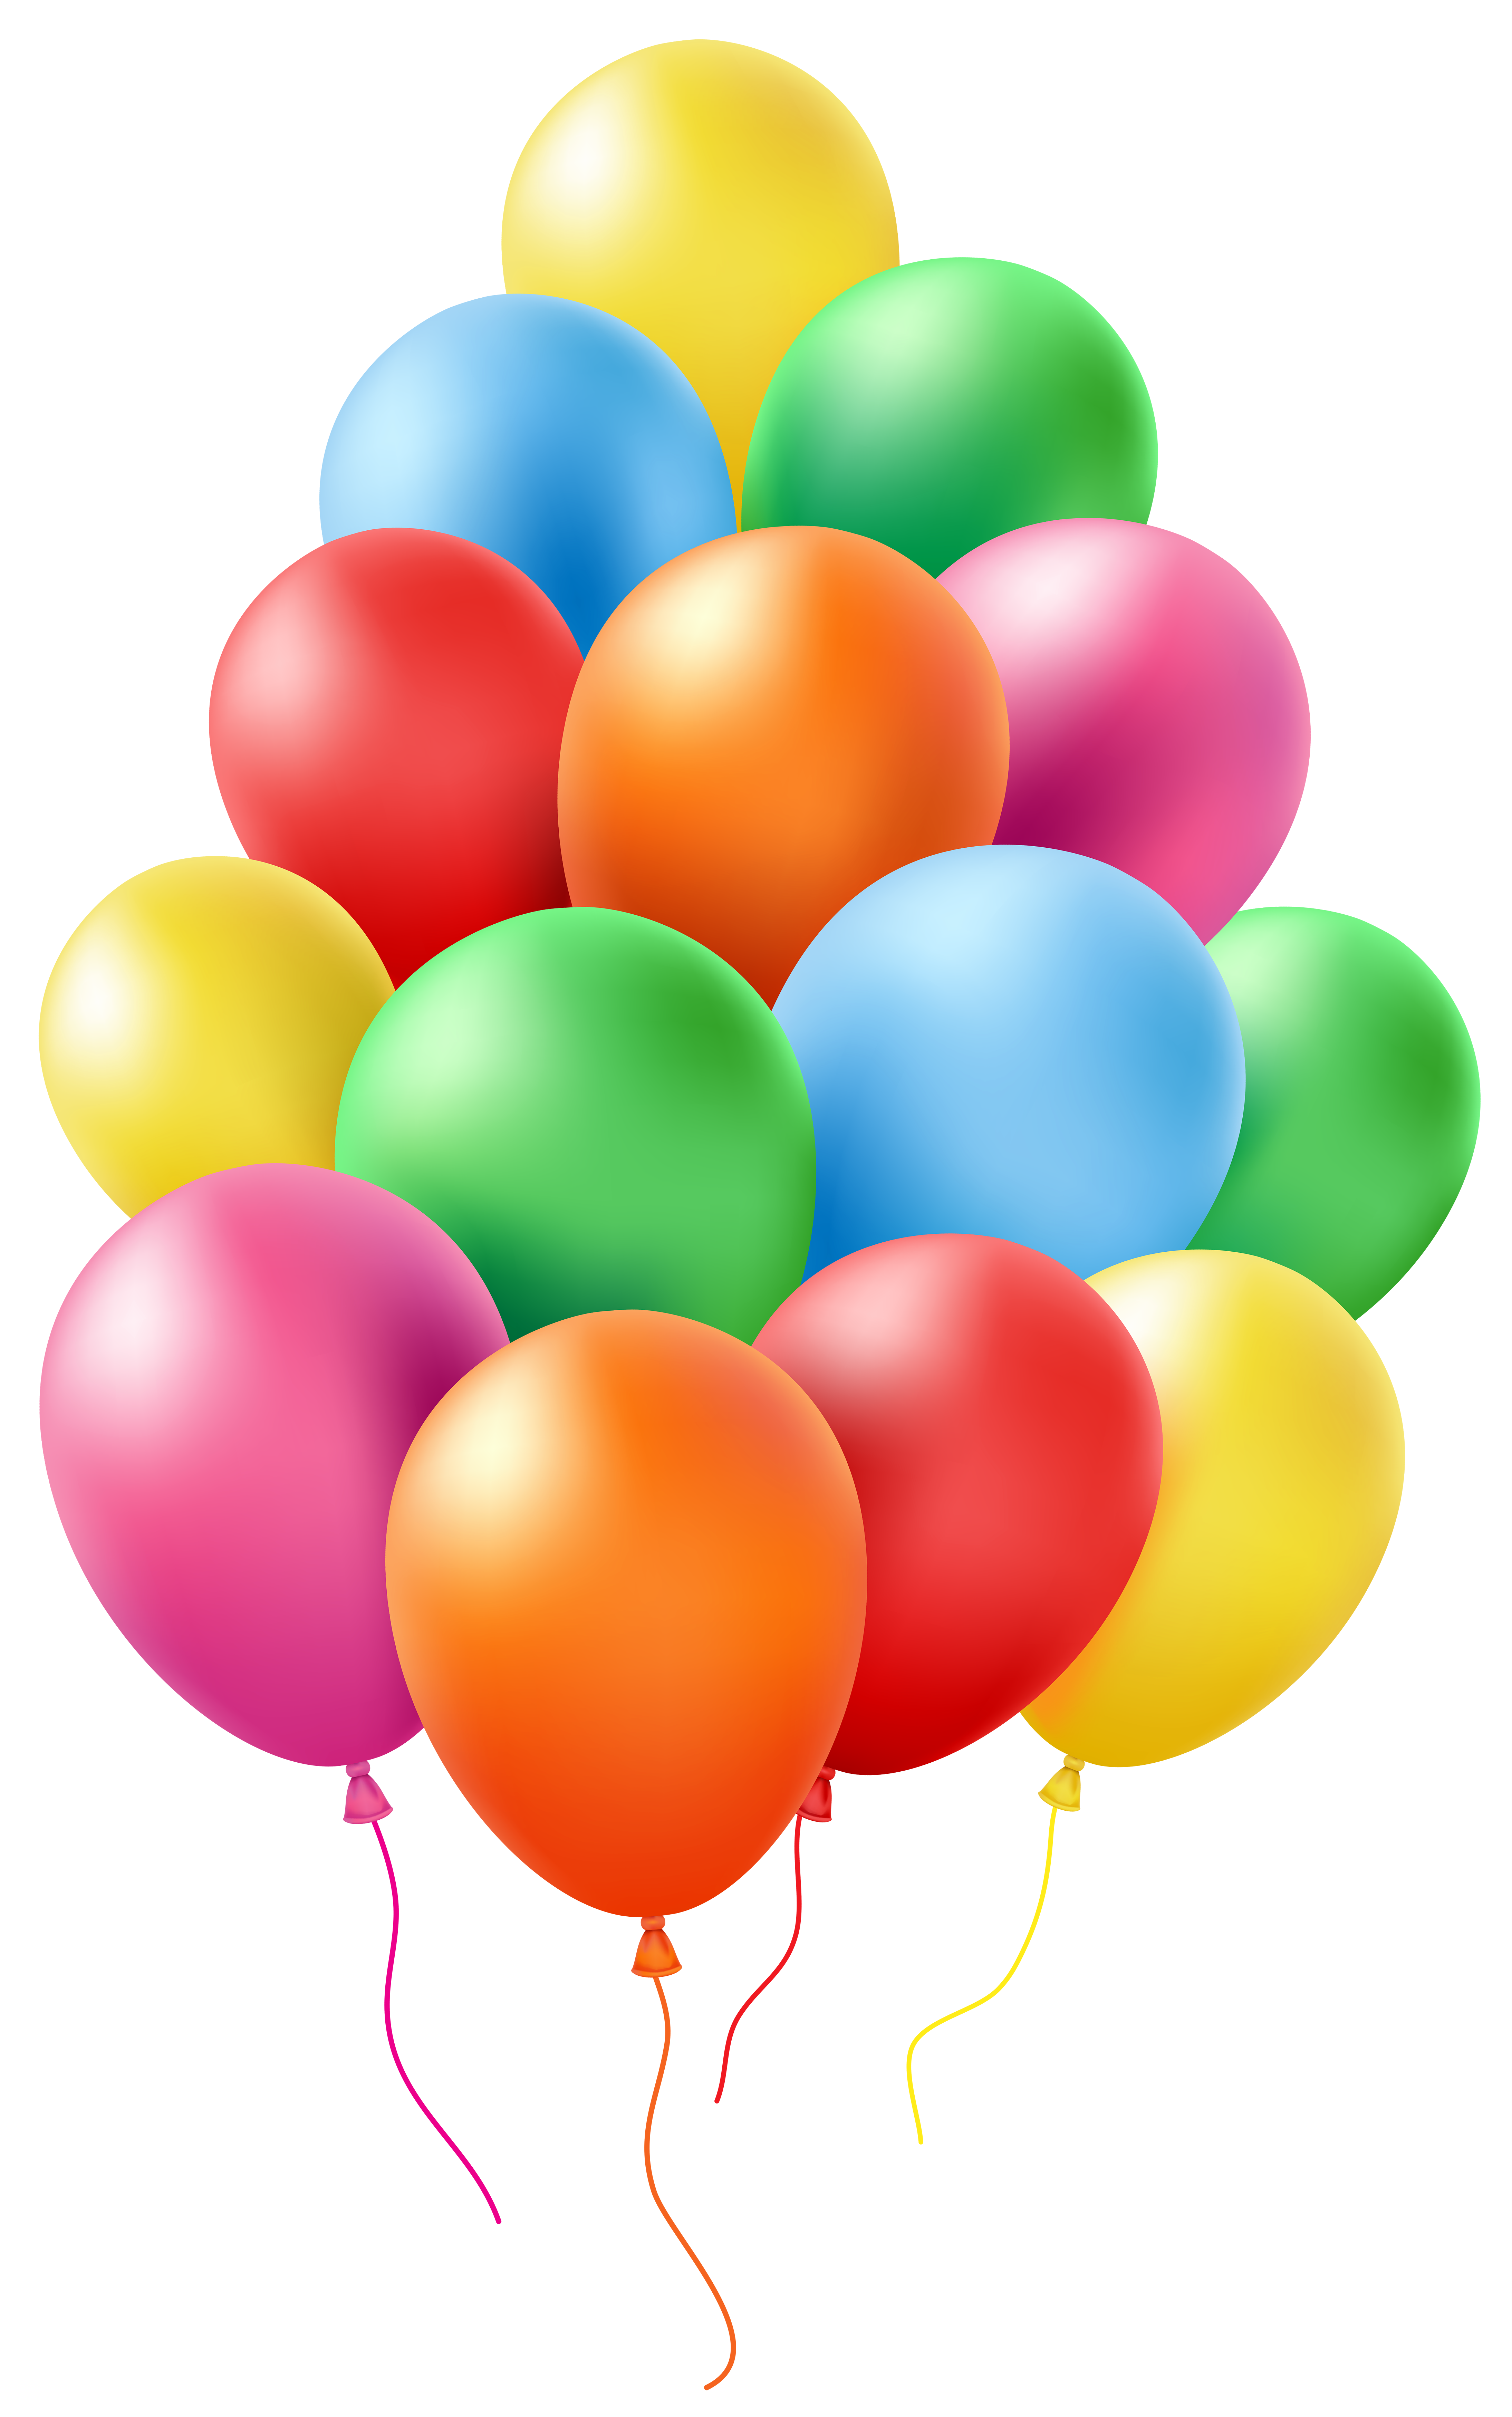 Balloons Clip Art PNG Transparent Image.